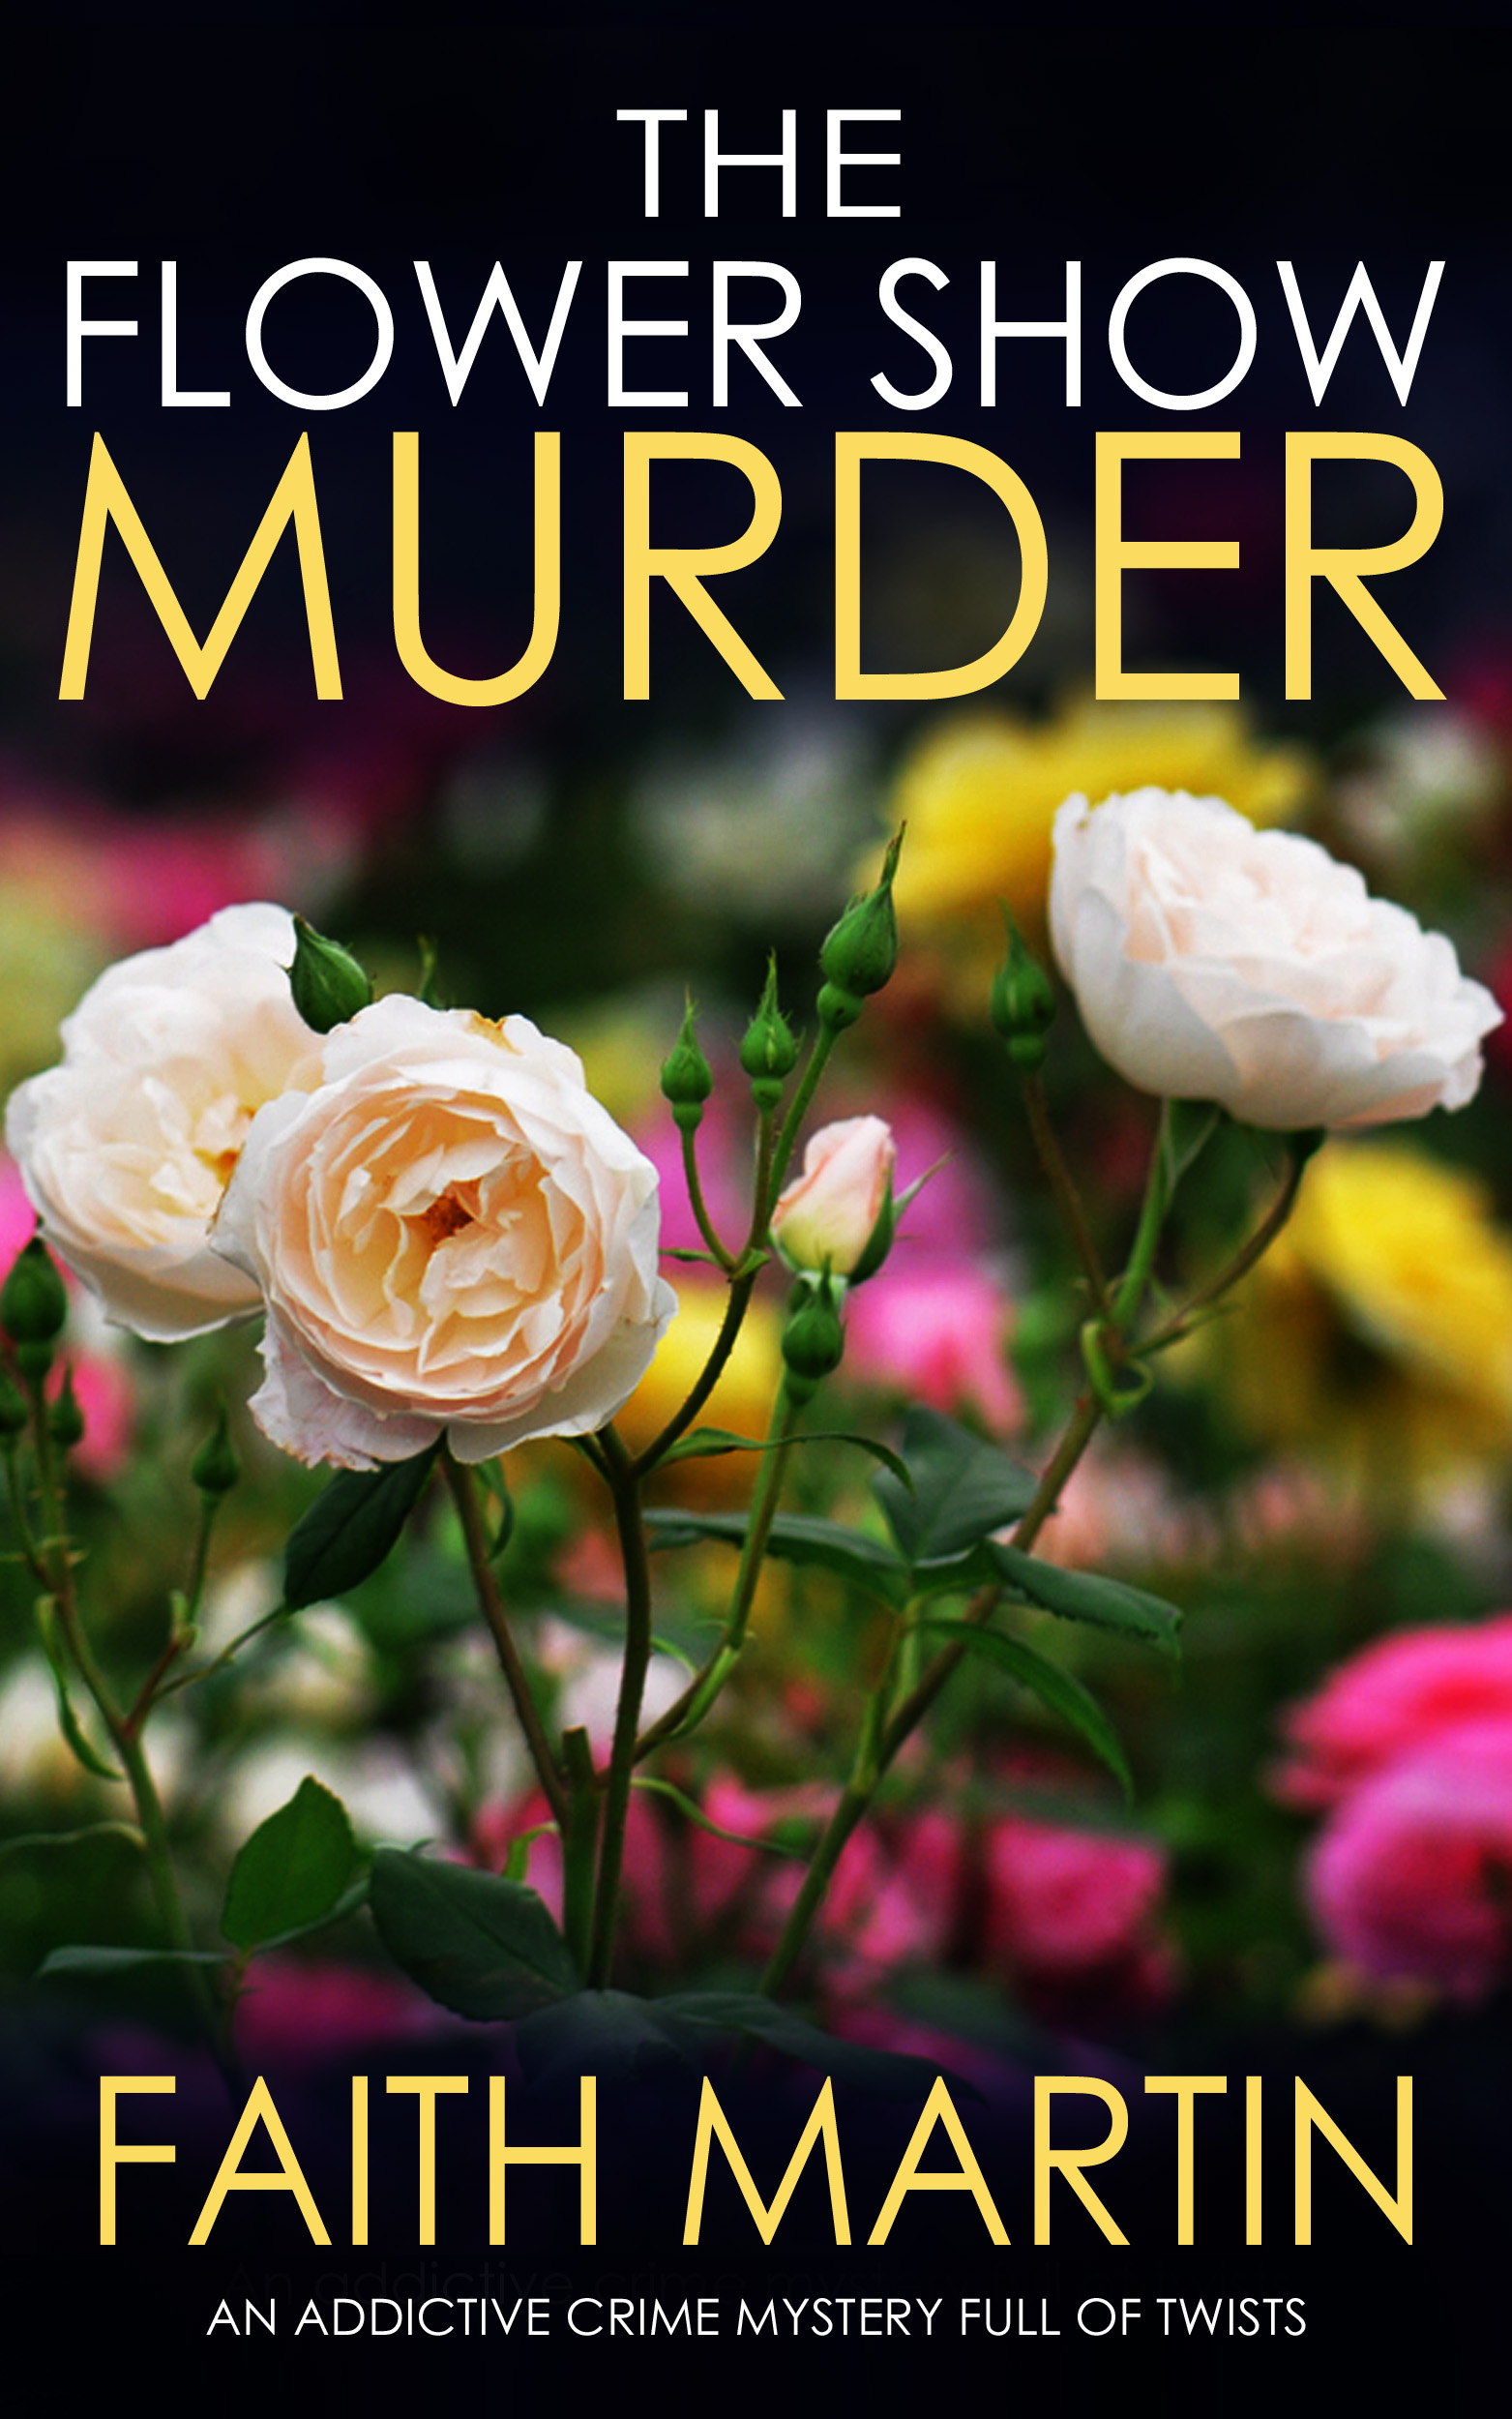 THE FLOWER SHOW MURDER.jpg